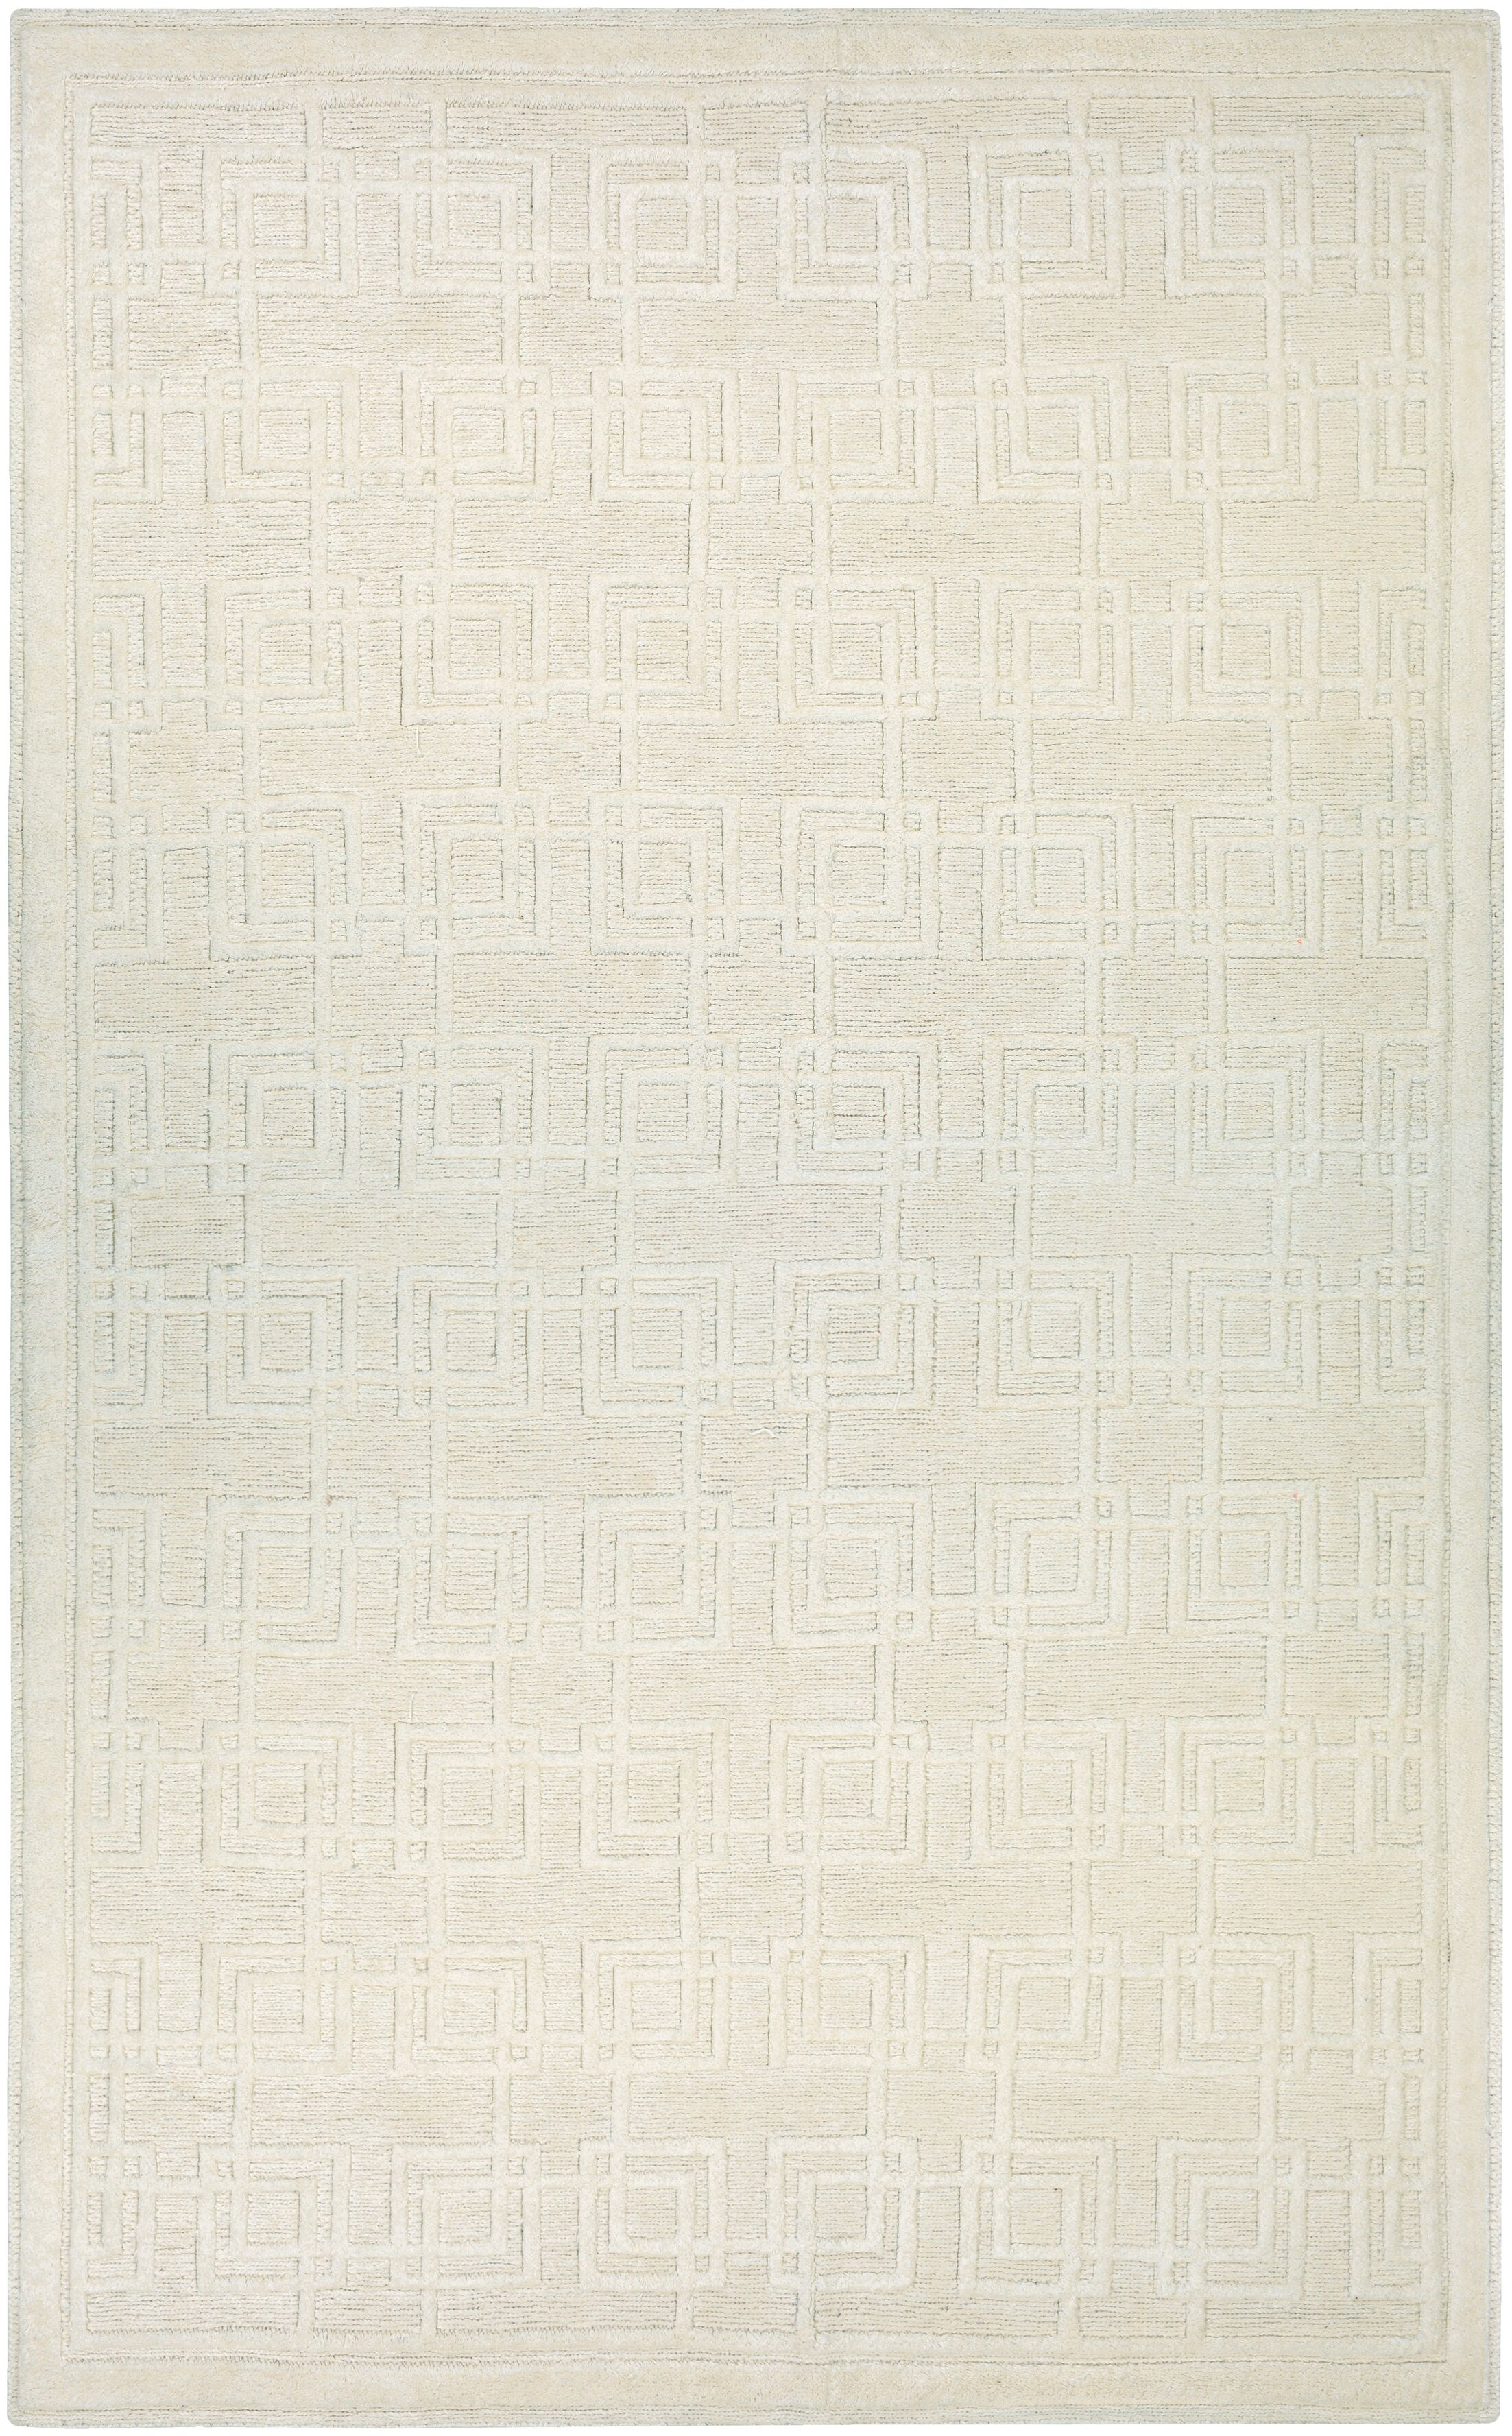 Bridlington Hand-Woven Off White Area Rug Rug Size: Rectangle 5'7